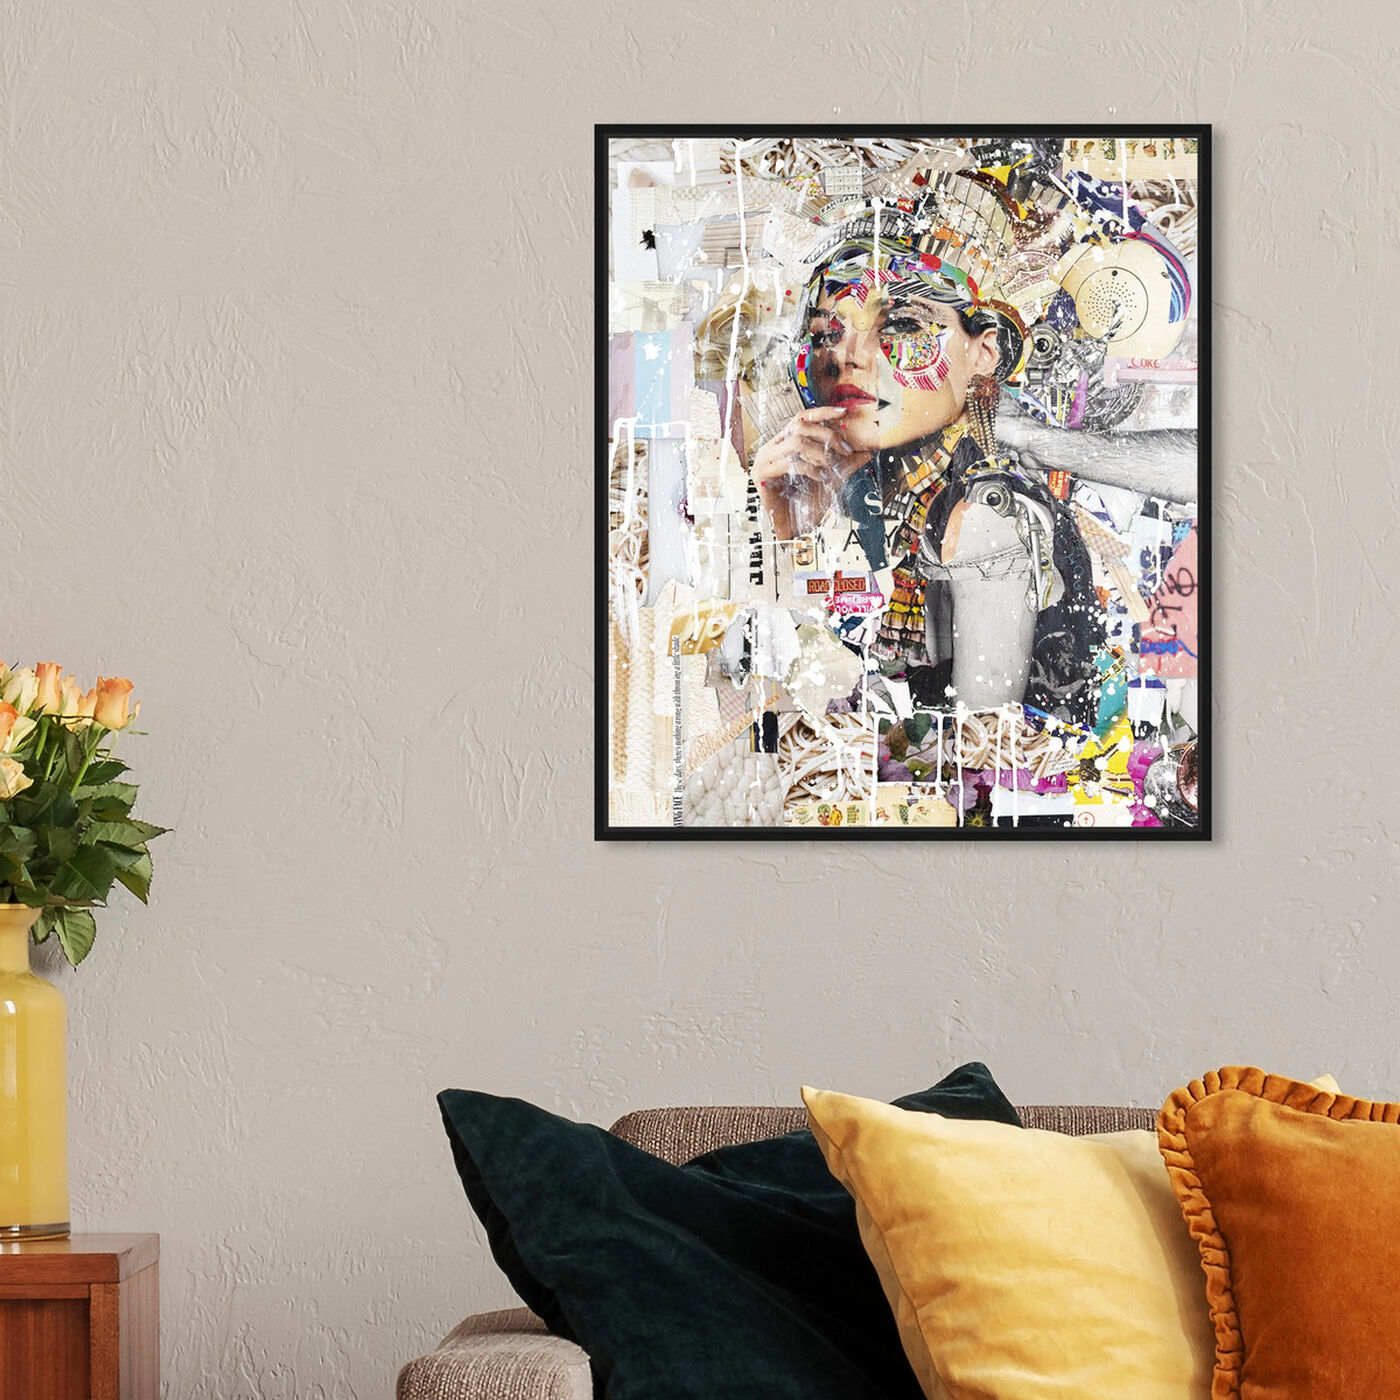 Hanging view of Katy-Hirschfeld - Pensive Beauty featuring fashion and glam and portraits art.